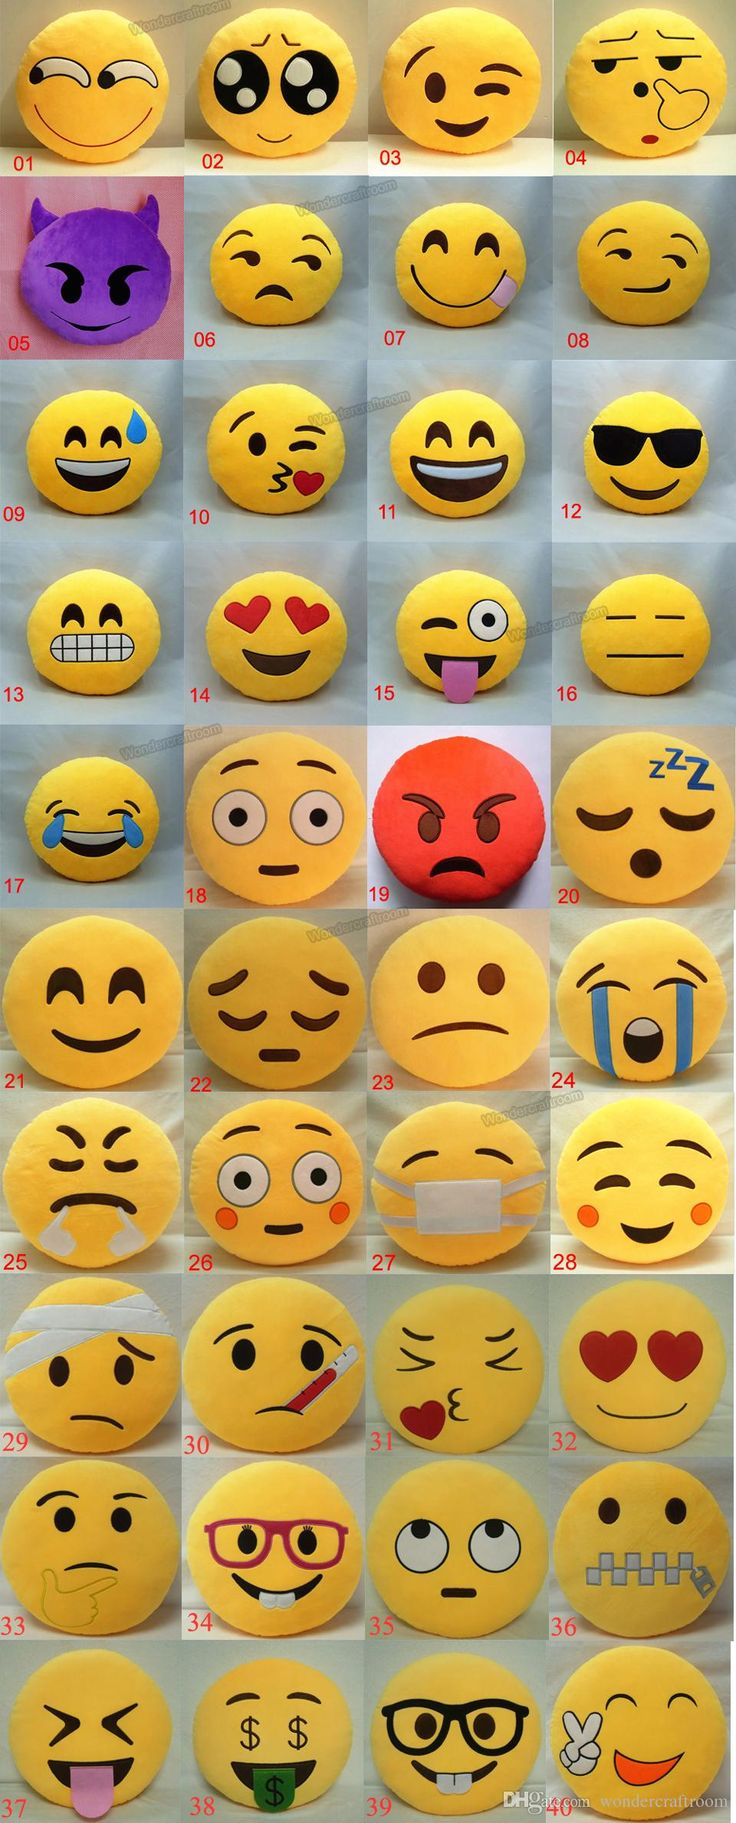 25 best ideas about smiley emoji on pinterest emoji 1 emojis and emoji images. Black Bedroom Furniture Sets. Home Design Ideas